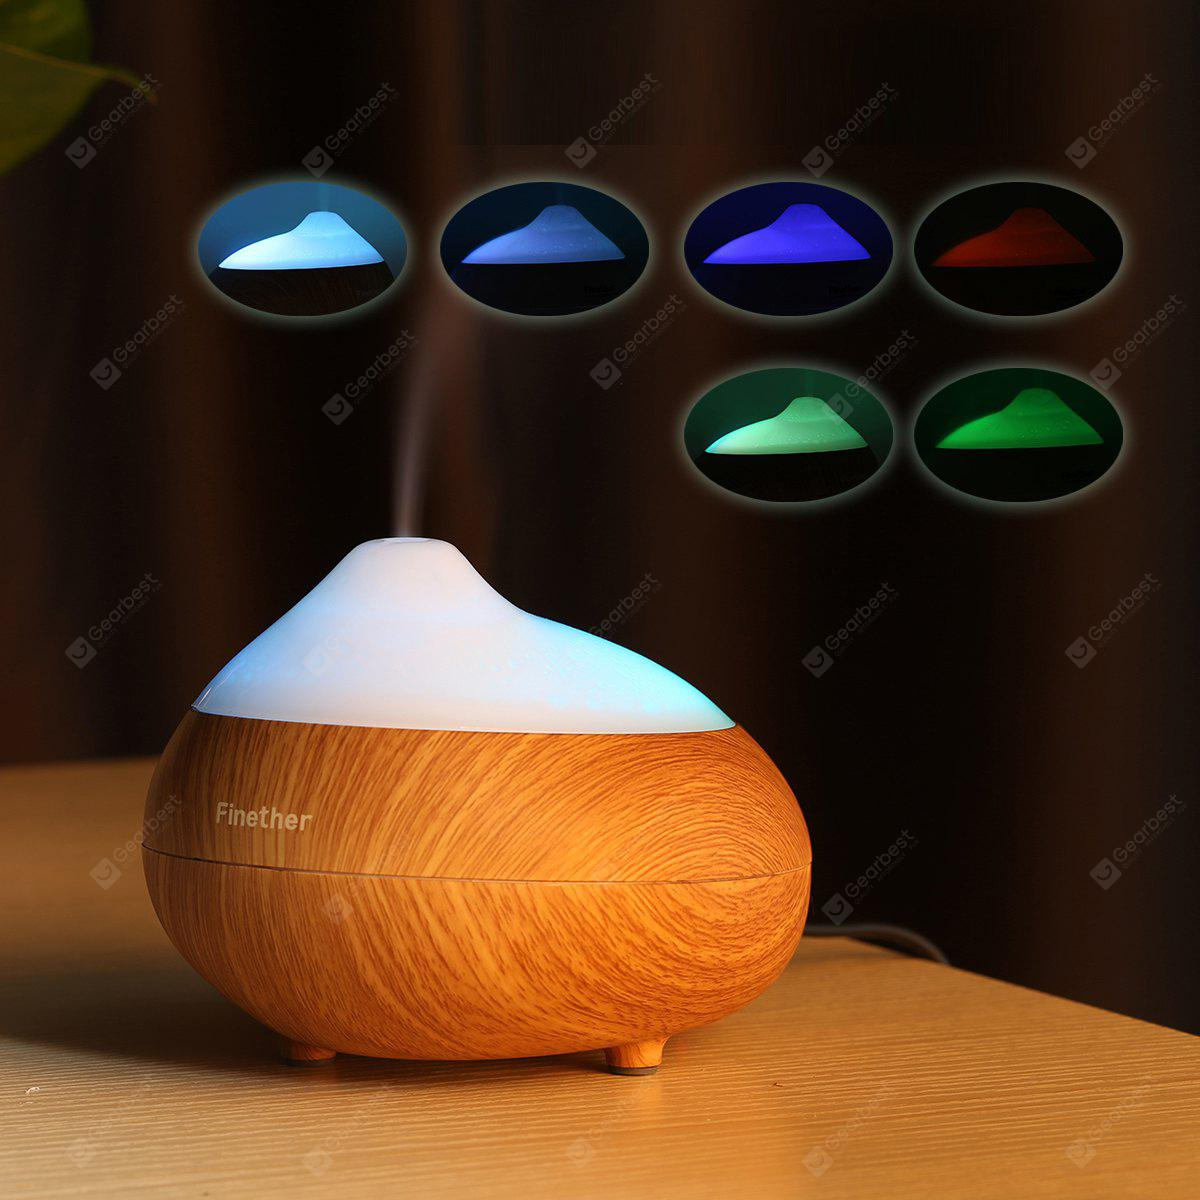 Finether 110ml Portable Essential Oil Aroma Diffuser Ultrasonic Humidifier Air Mist Aromatherapy Purifier LED Light UK